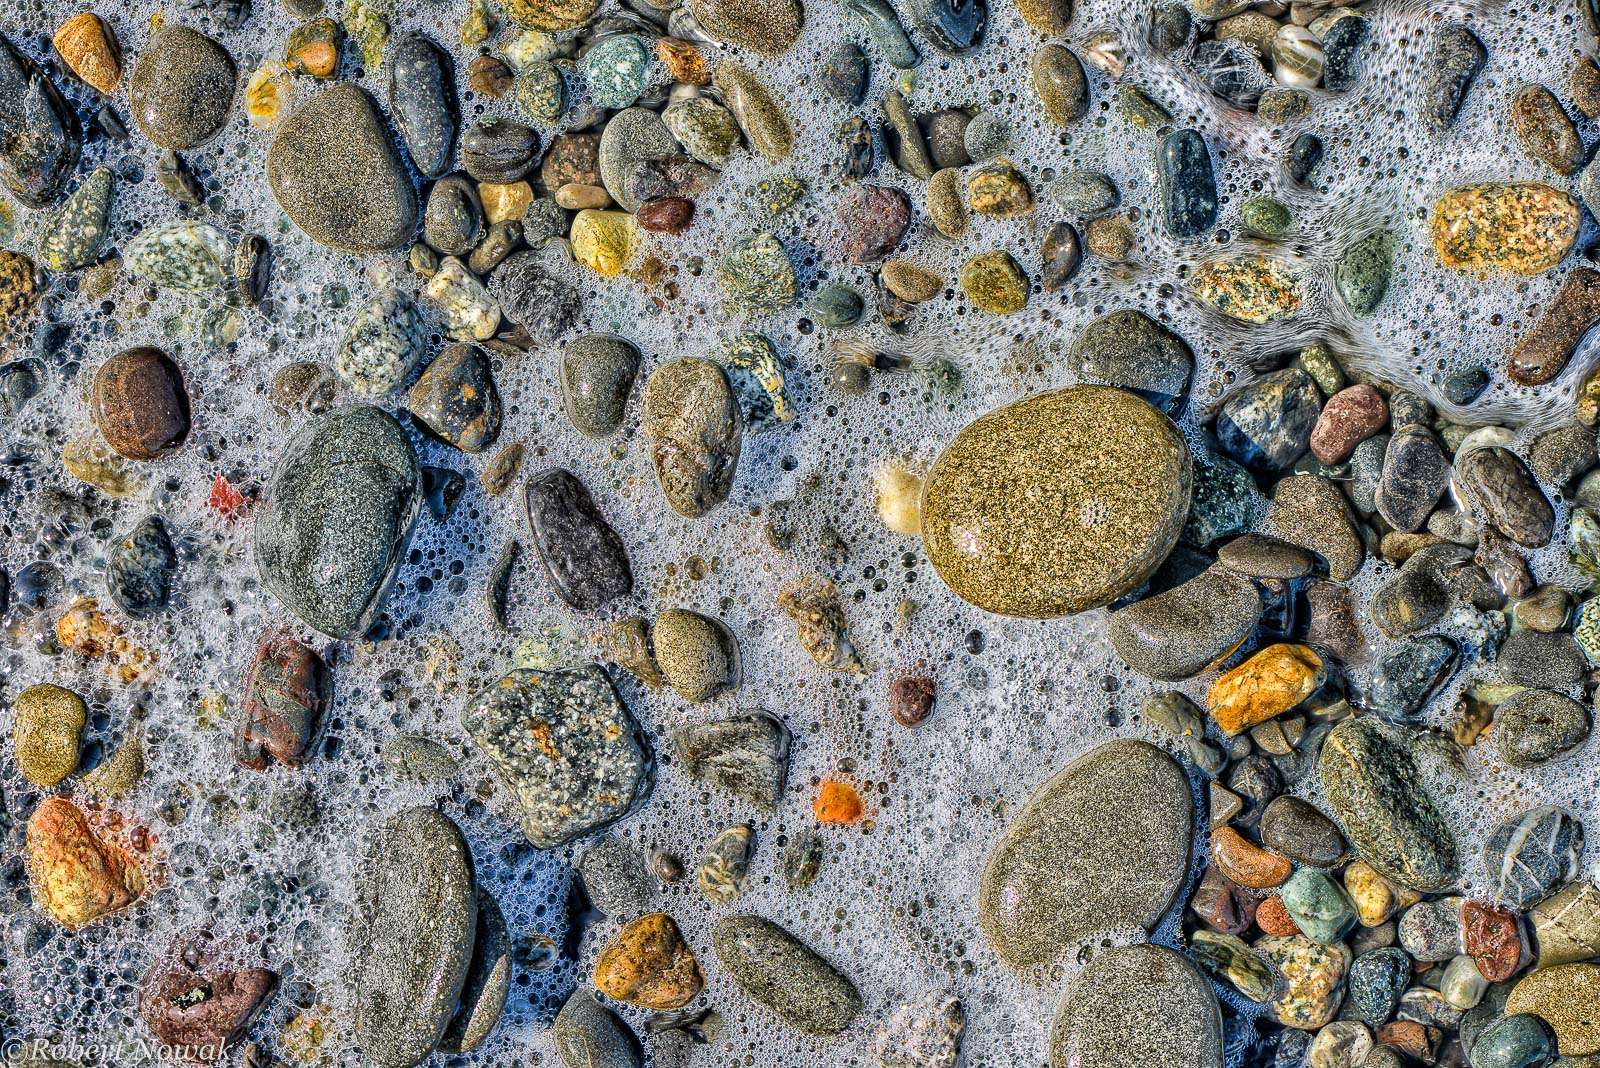 Bubbles left behind by receding waves mix with stones on the beach, Dungeness National Wildlife Refuge, Washington